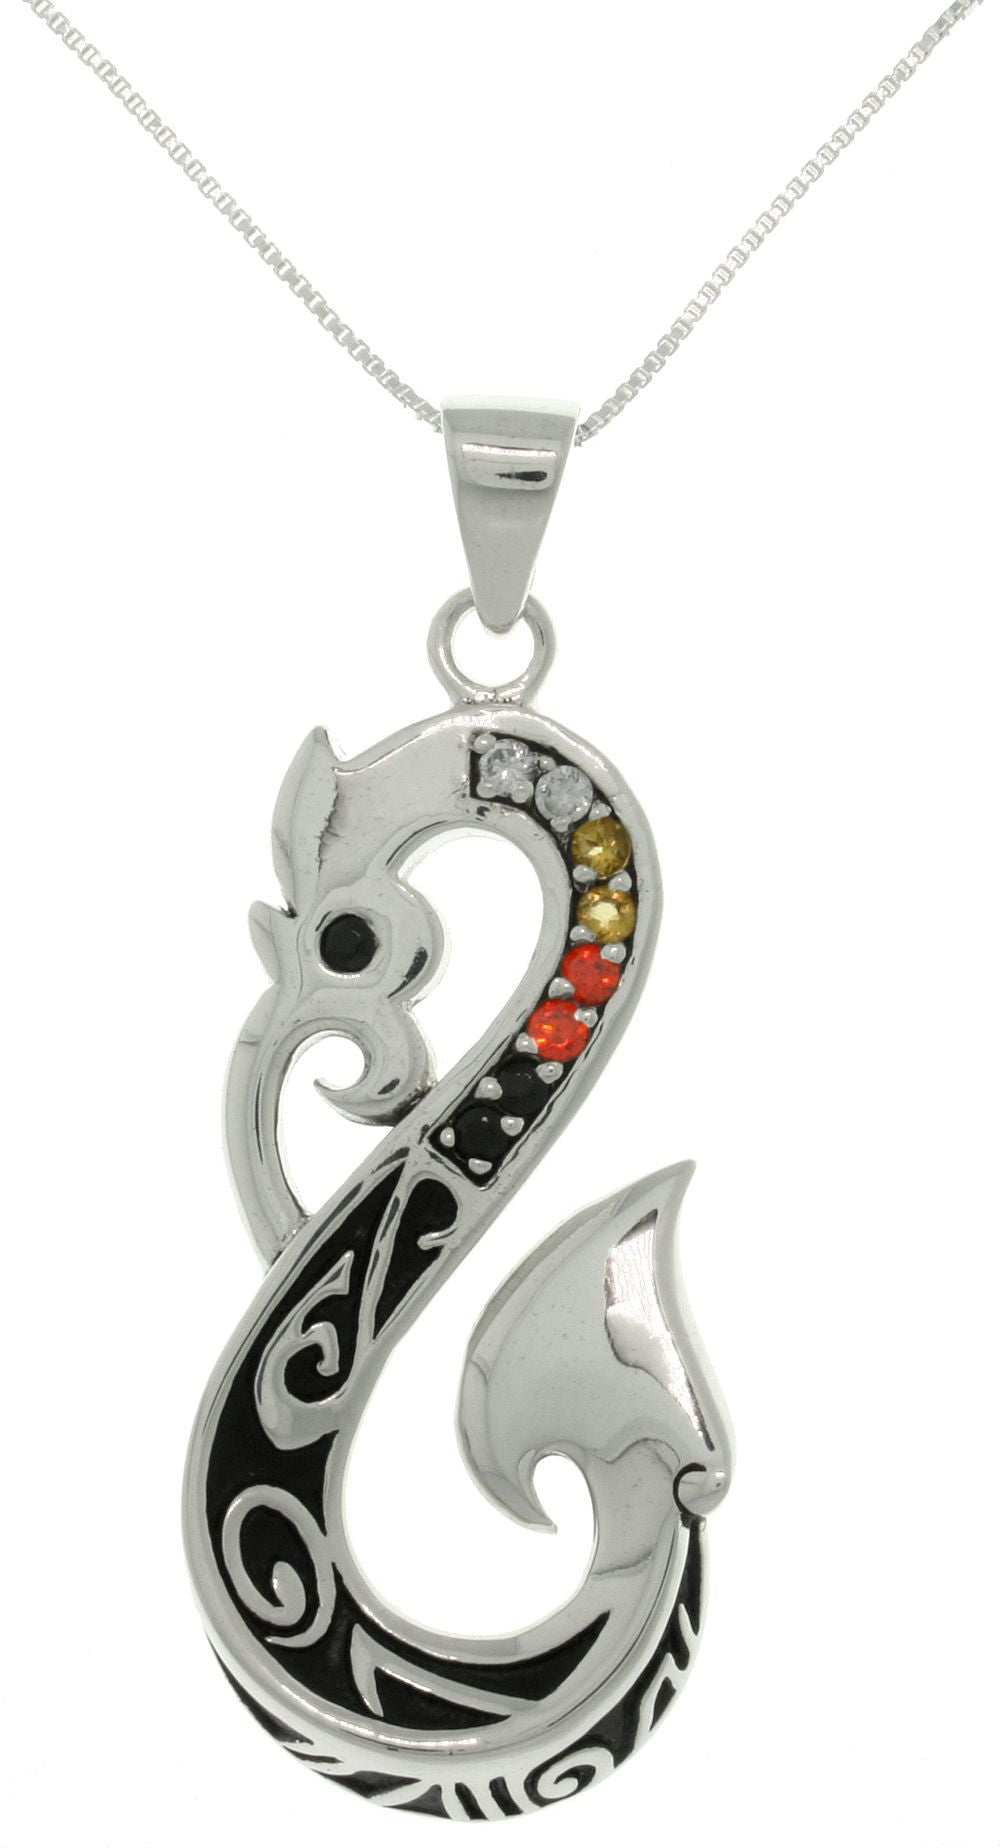 Jewelry Trends Sterling Silver Celtic Viking Dragon Tail Pendant with Austrian Crystals on Chain Necklace